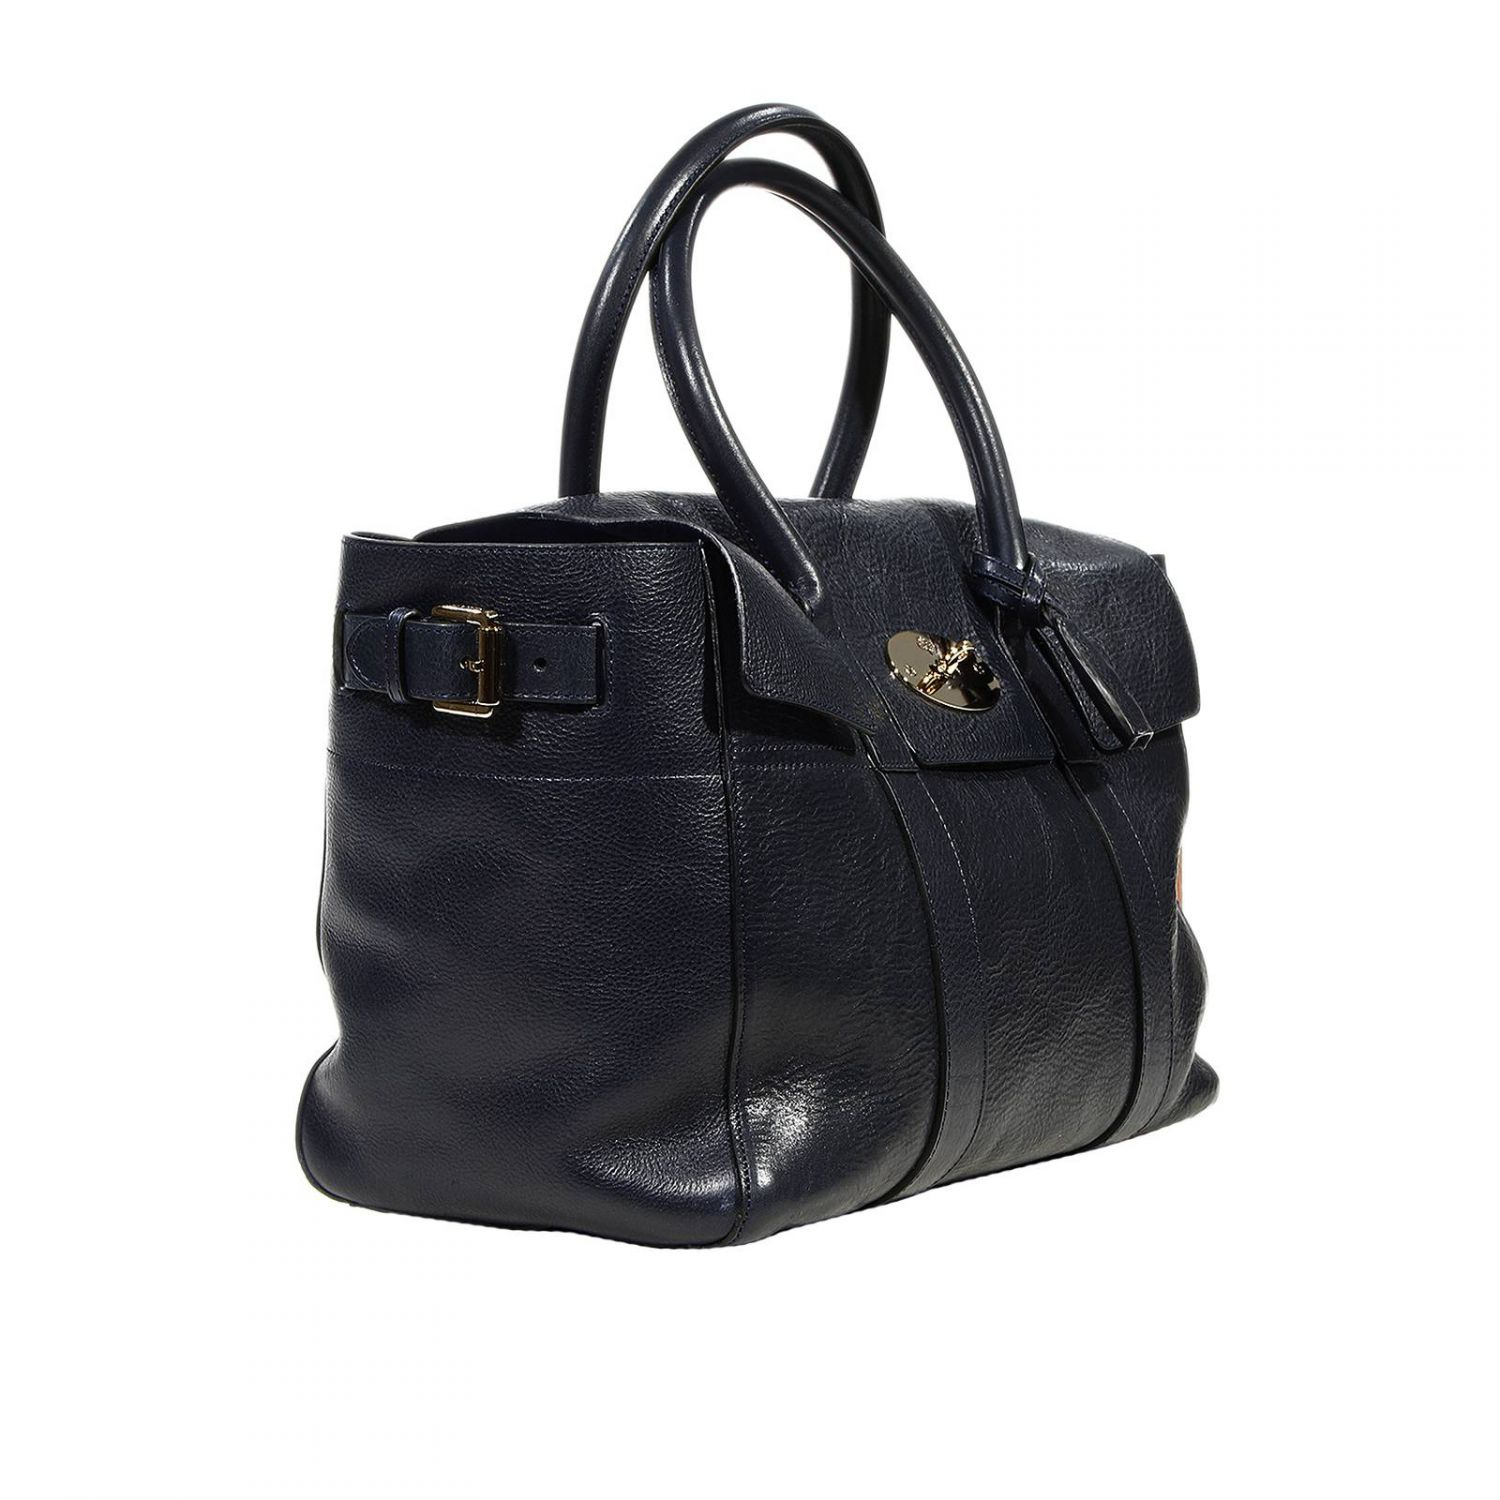 ... best price gallery. previously sold at giglio womens mulberry bayswater  e2259 71ca8 cfa82383a5b91